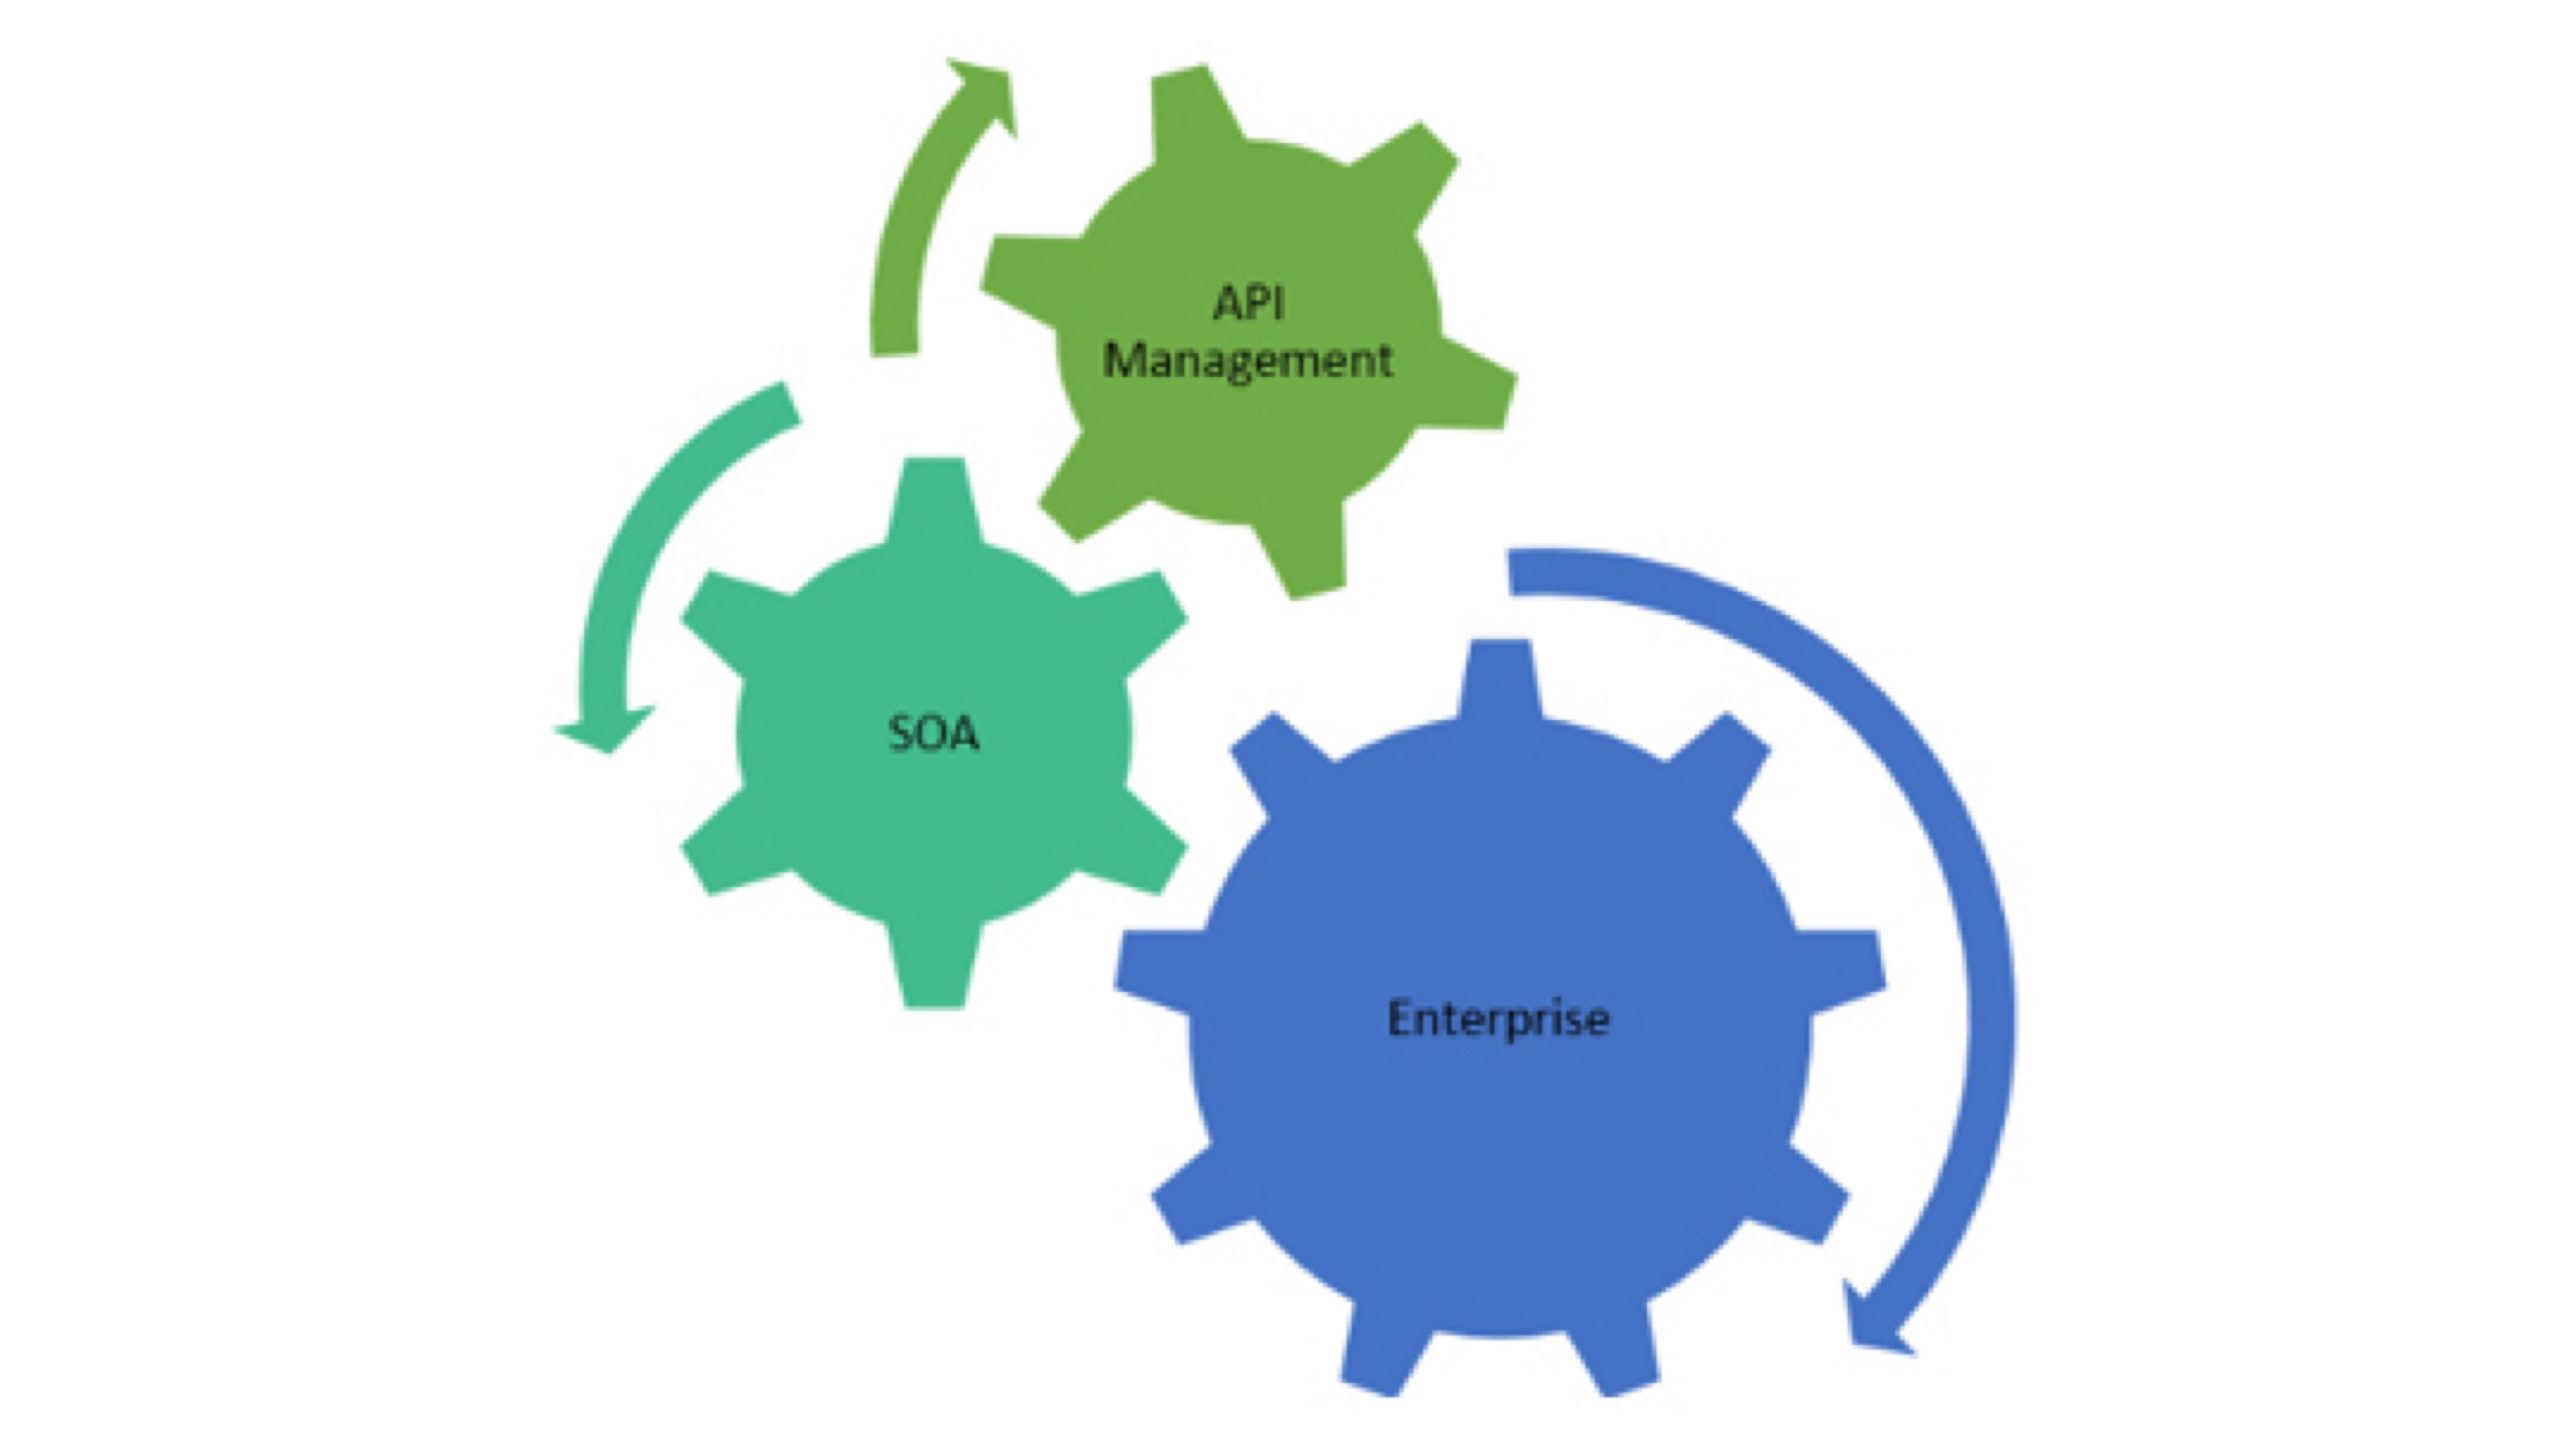 blog-banner-REST-API-Management-Fuels-Enterprise-SOA-Adoption